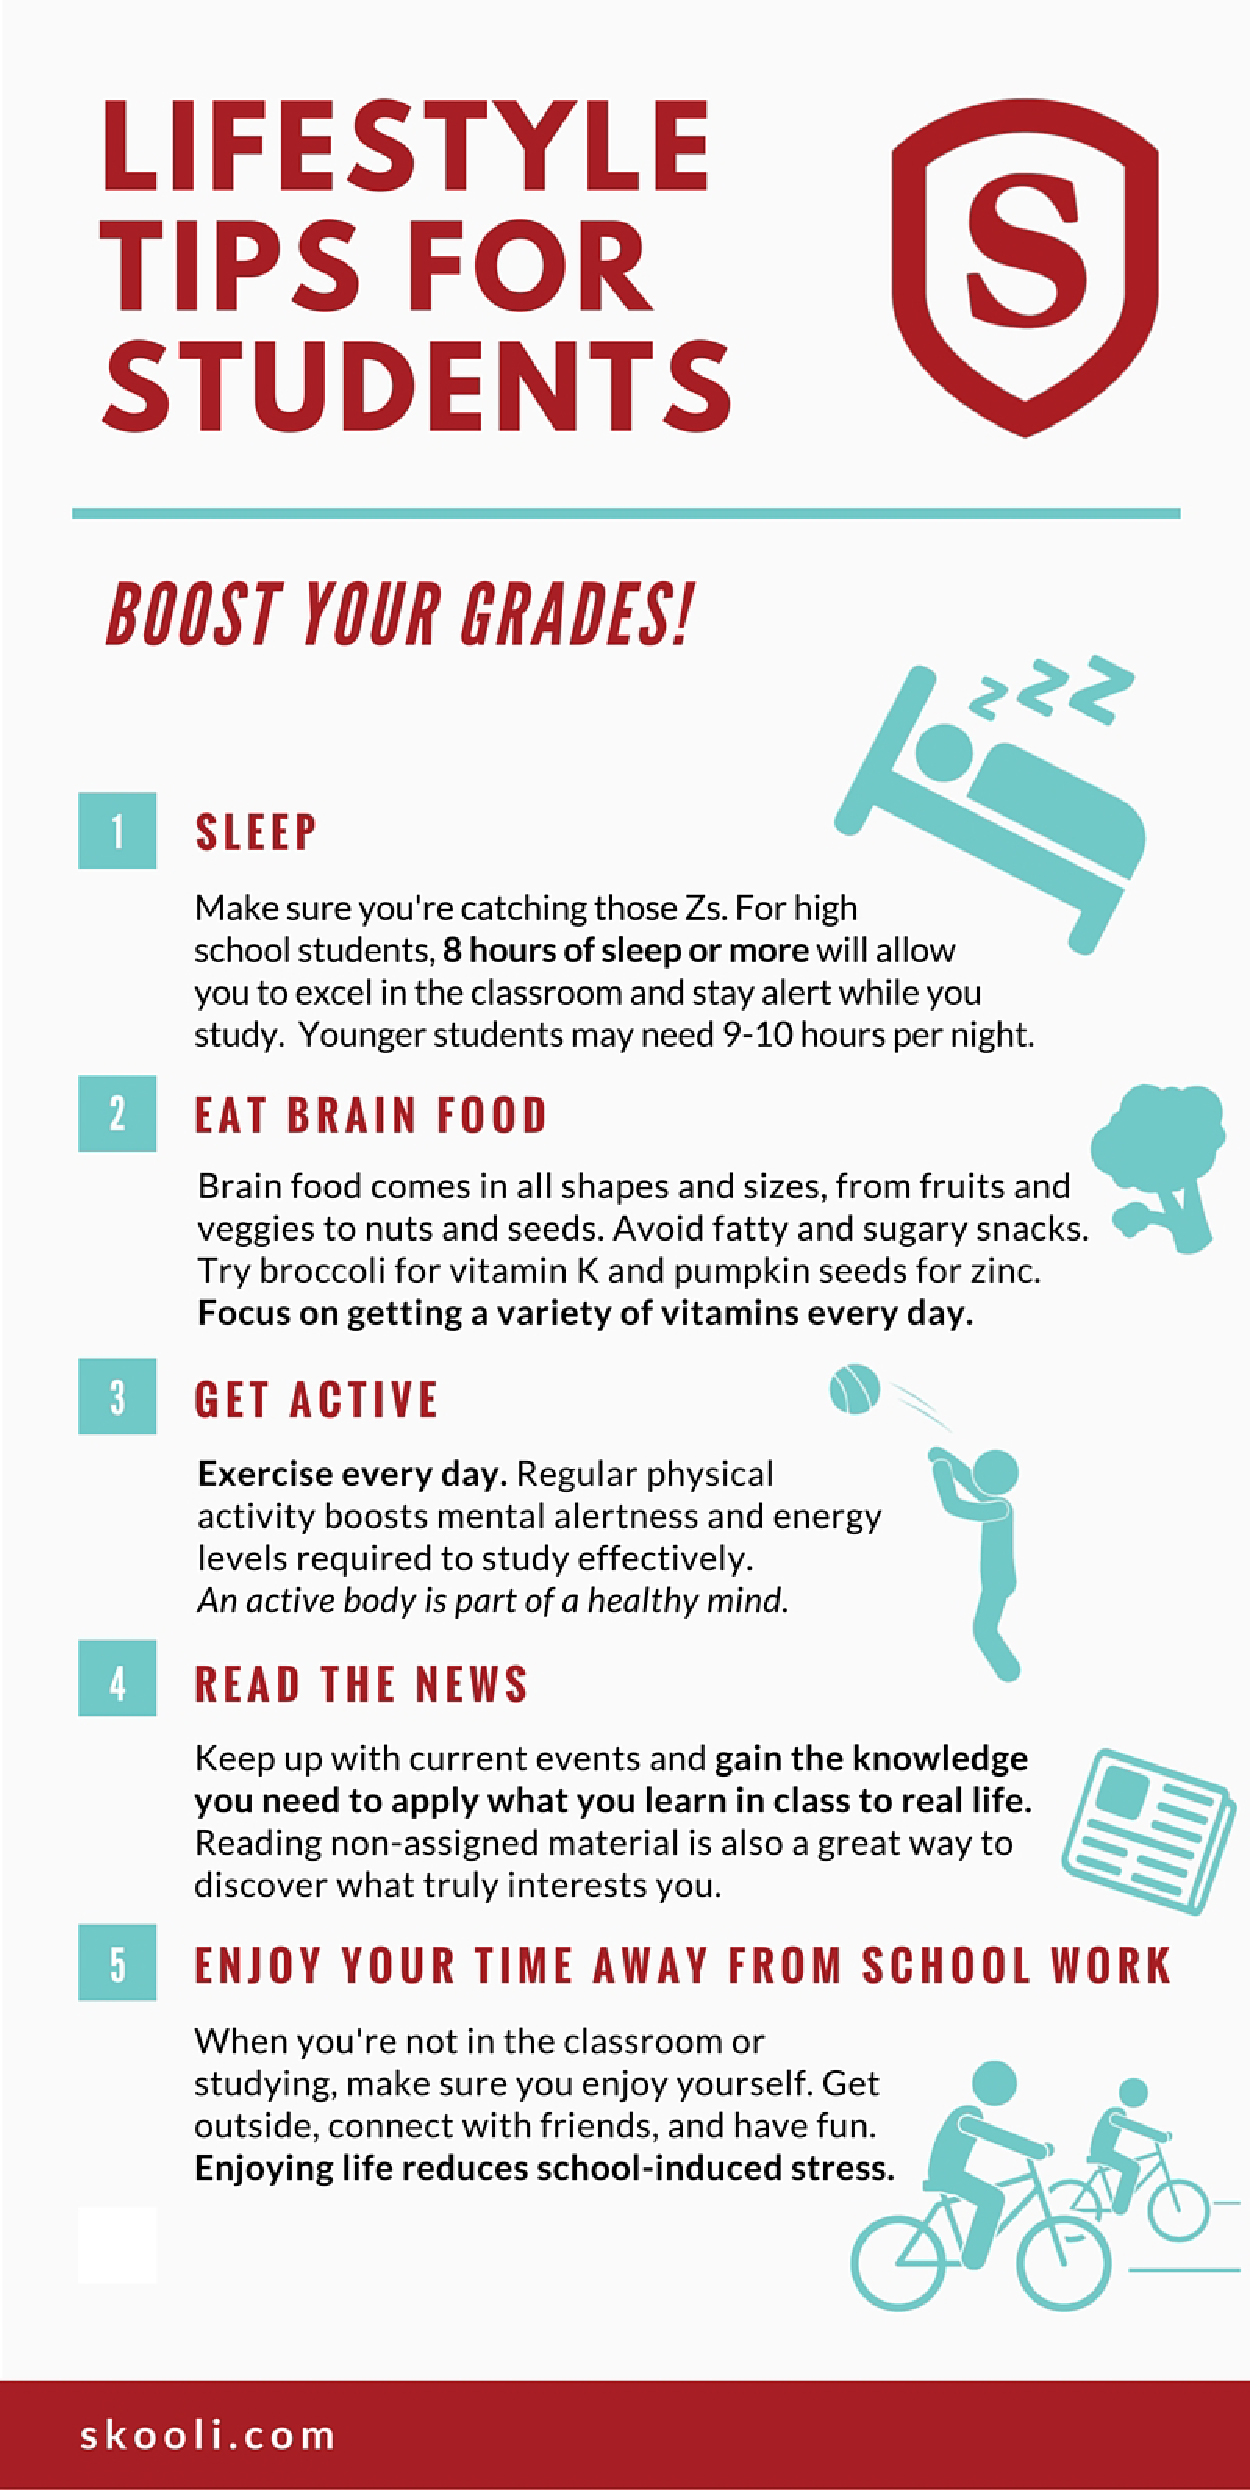 5 Lifestyle Tips For Students Infographic